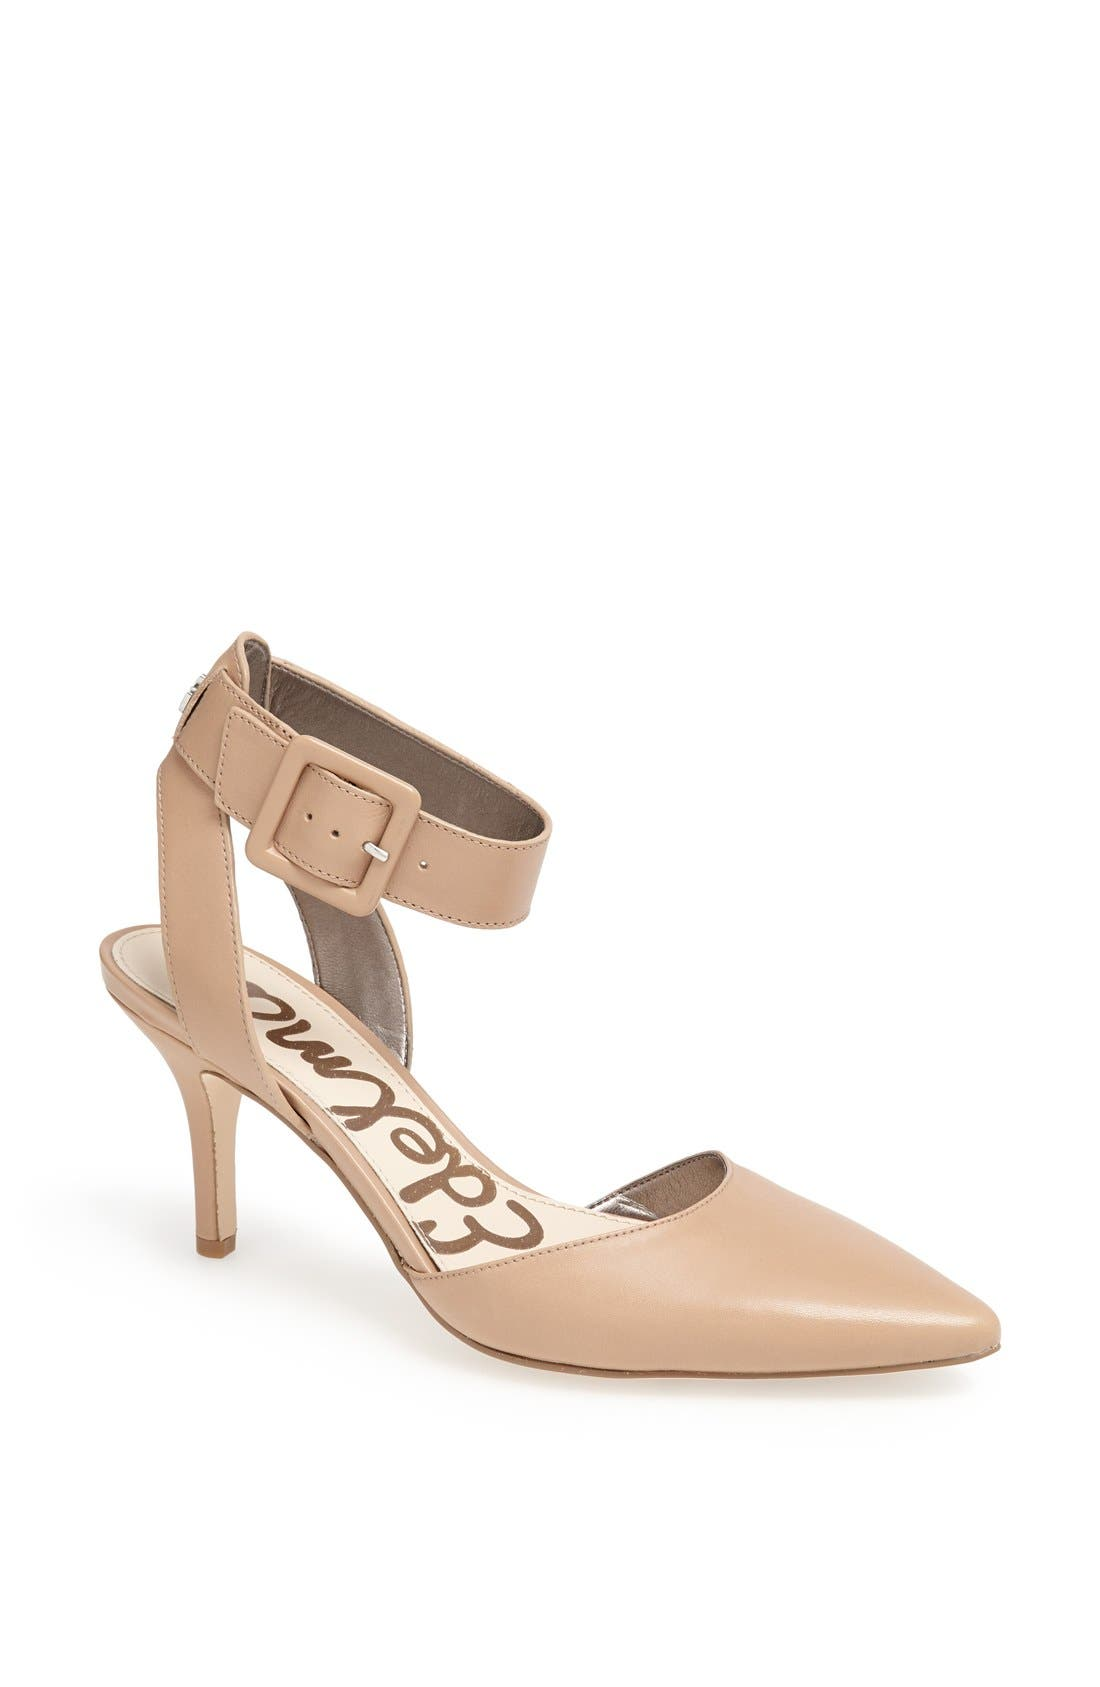 Alternate Image 1 Selected - Sam Edelman 'Okala' Pump (Women)